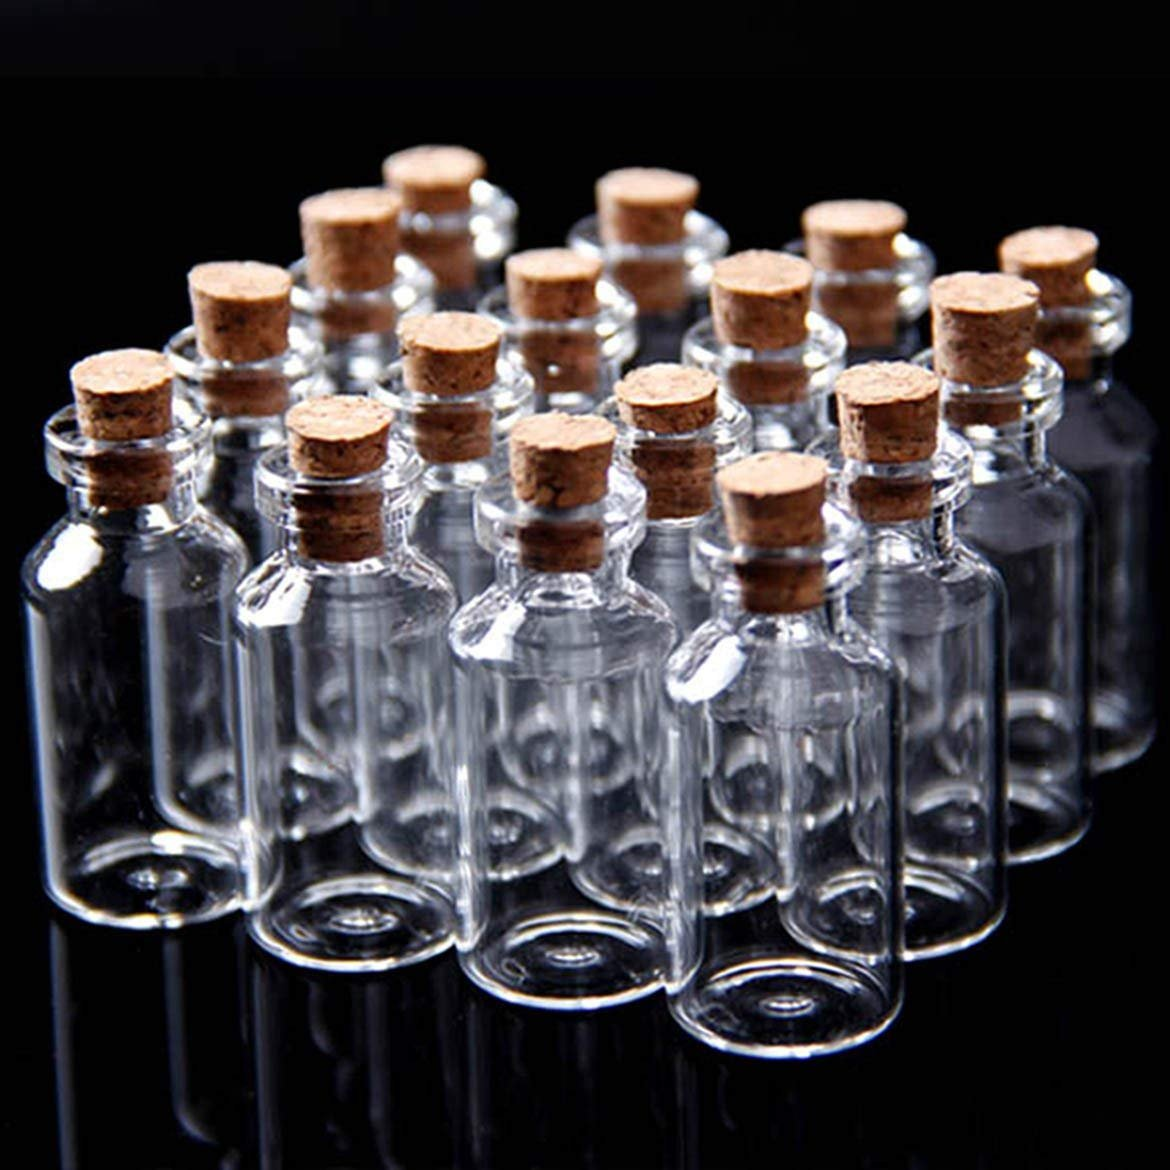 24Pcs Tiny Mini Empty Clear Cork Glass Bottles Vials 7ml -22 (Dia.) x 40 mm by GAOHOU G12